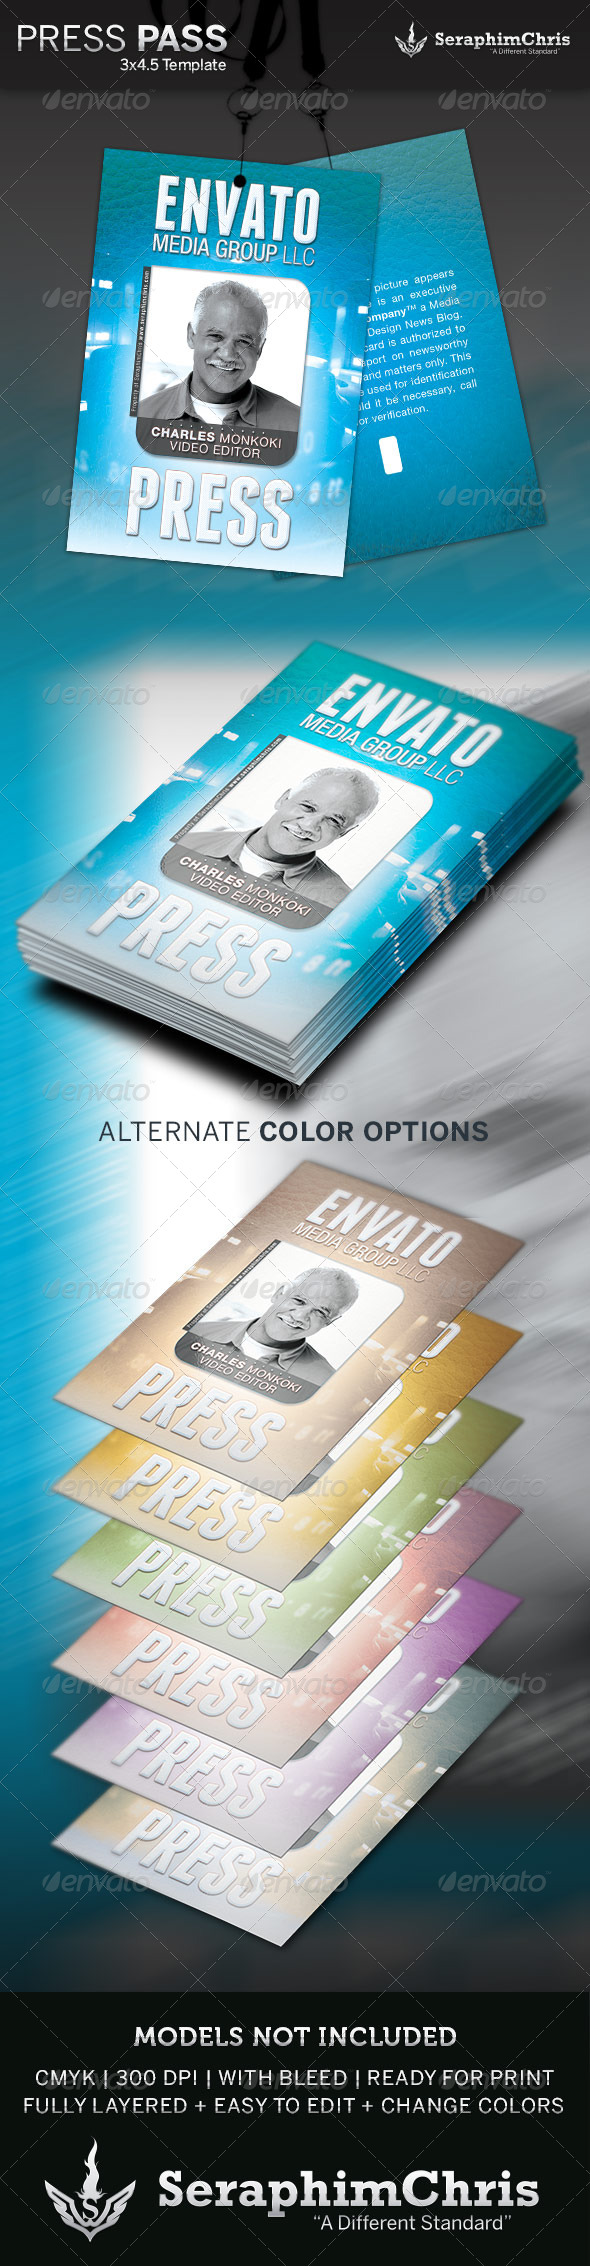 GraphicRiver Press Pass Template 4249564